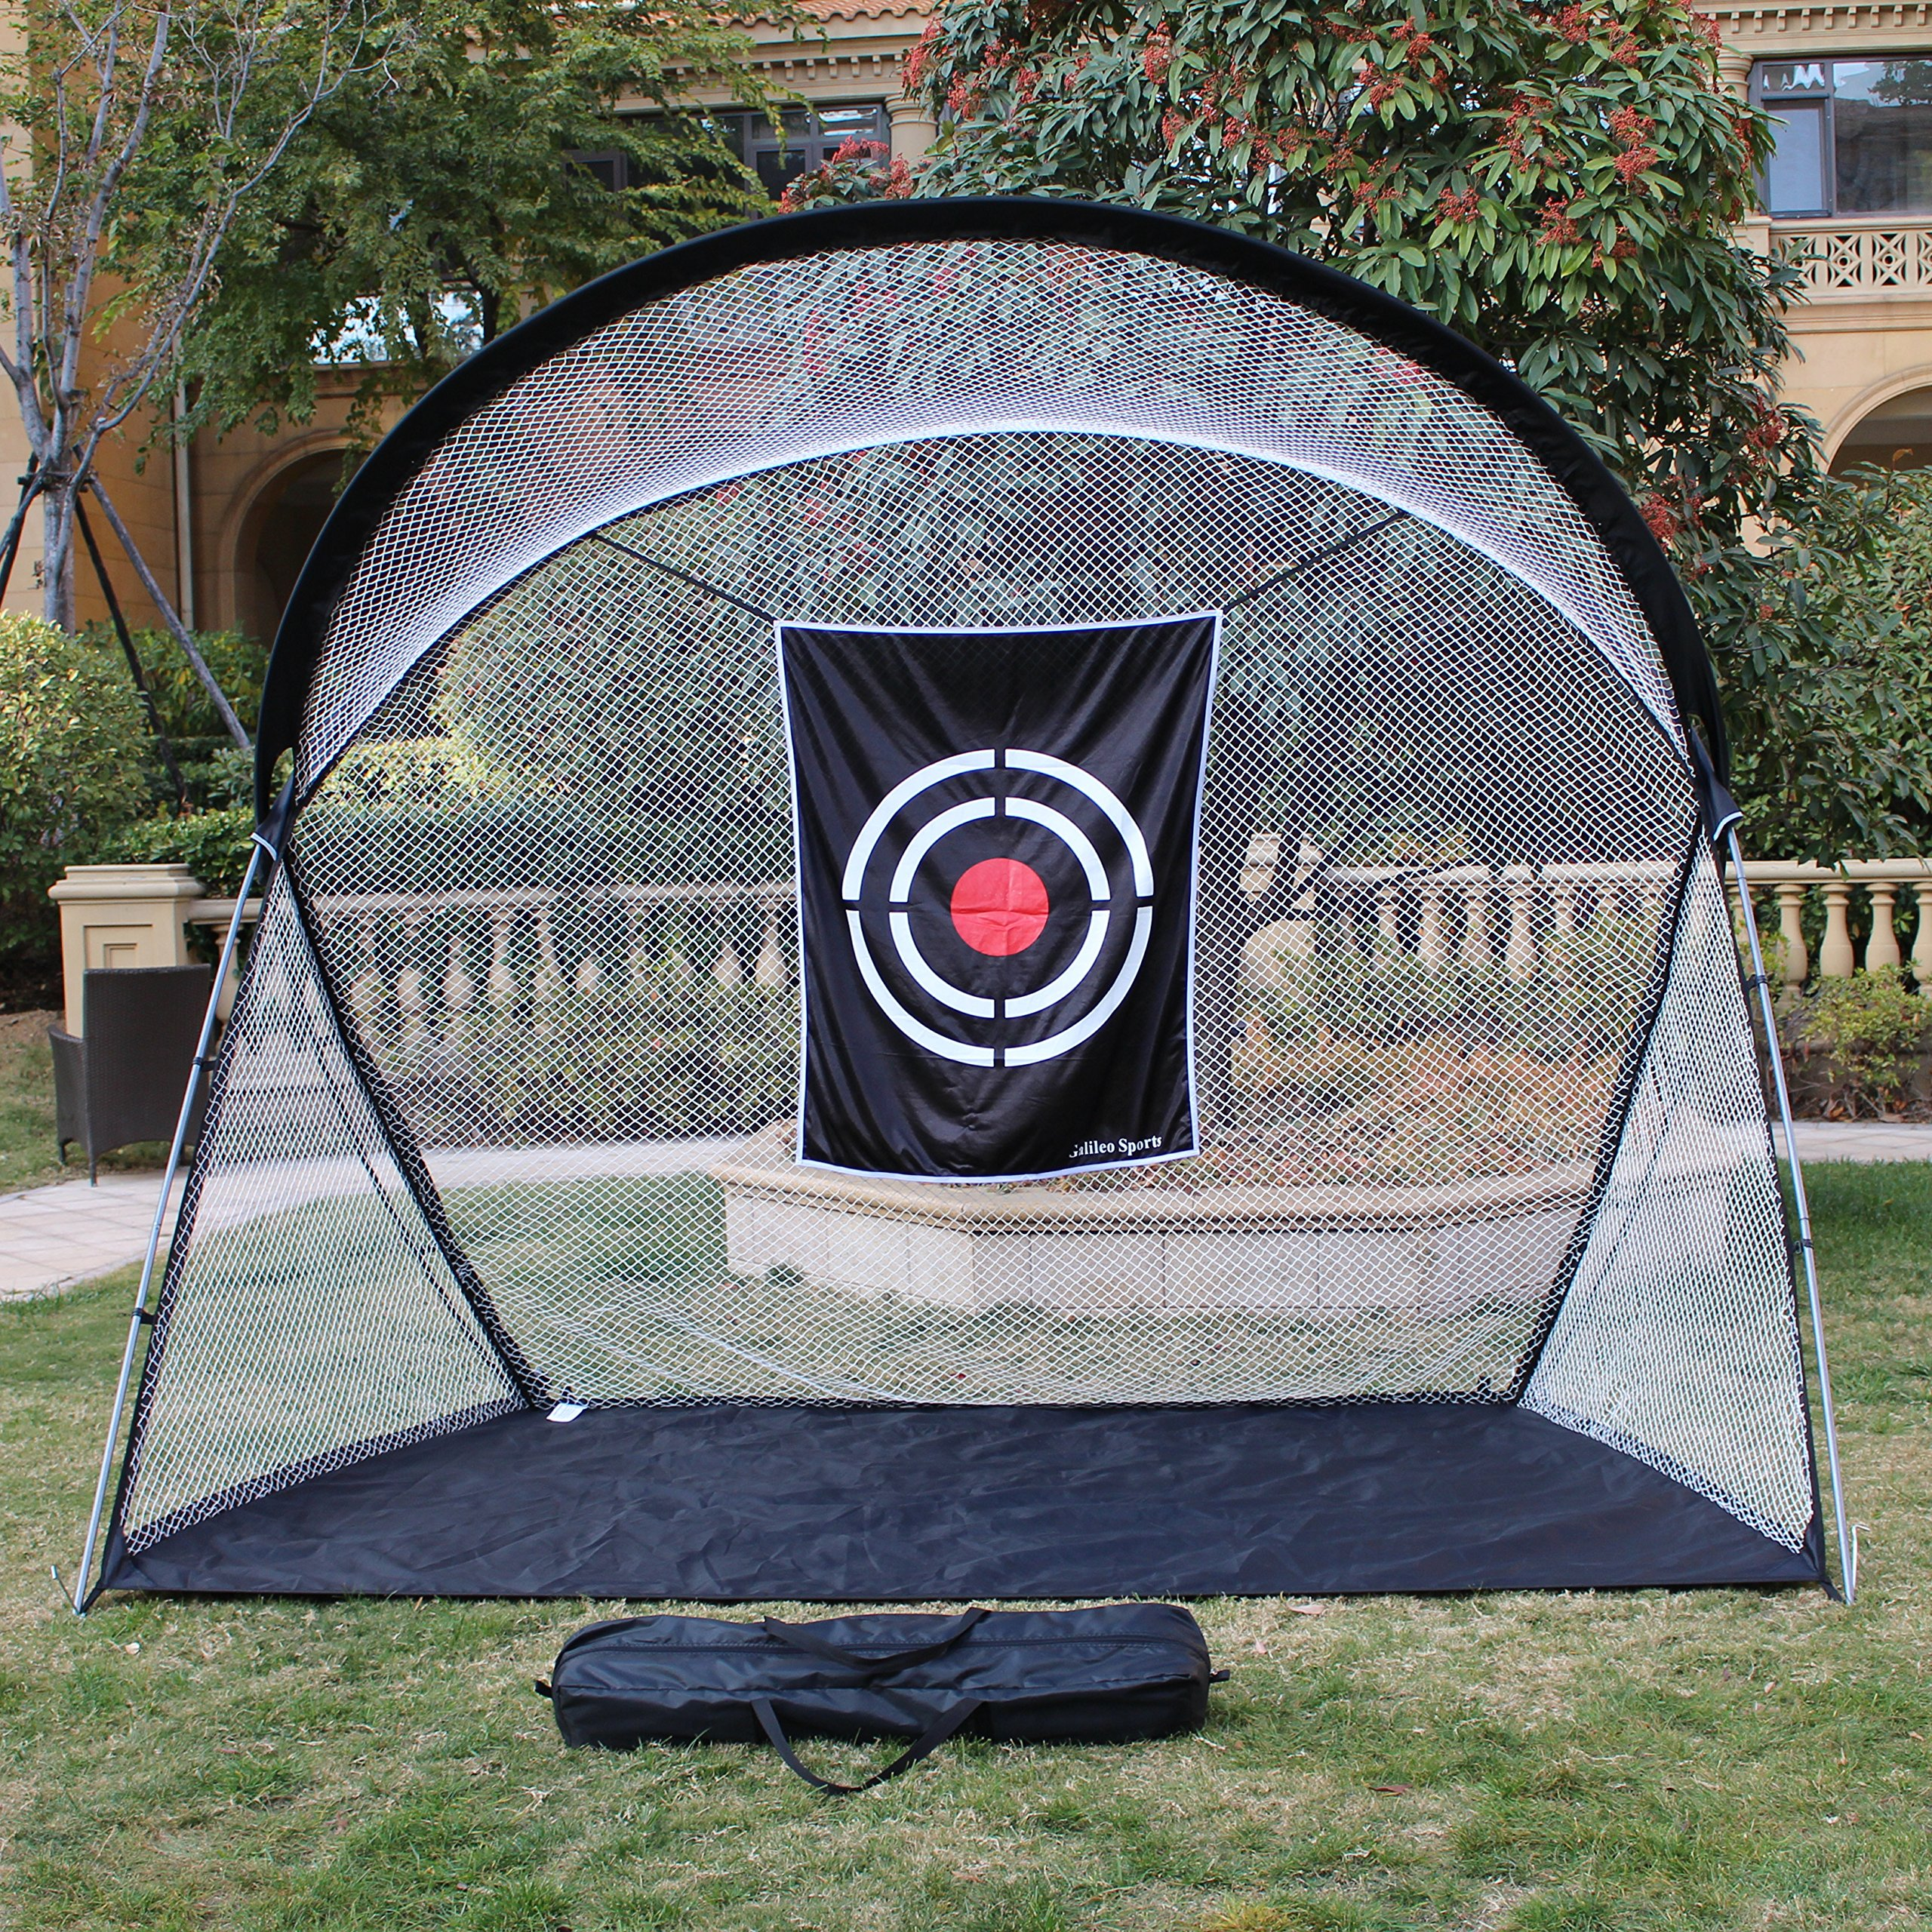 Galileo Sports Golf Practice Net Training Net High Strength Steel Frame with large target Backyard practice Carry Bag Practice Driving Indoor and Outdoor Large Golf target 10.5'(L) x5.5'(W) x8.6'(H)